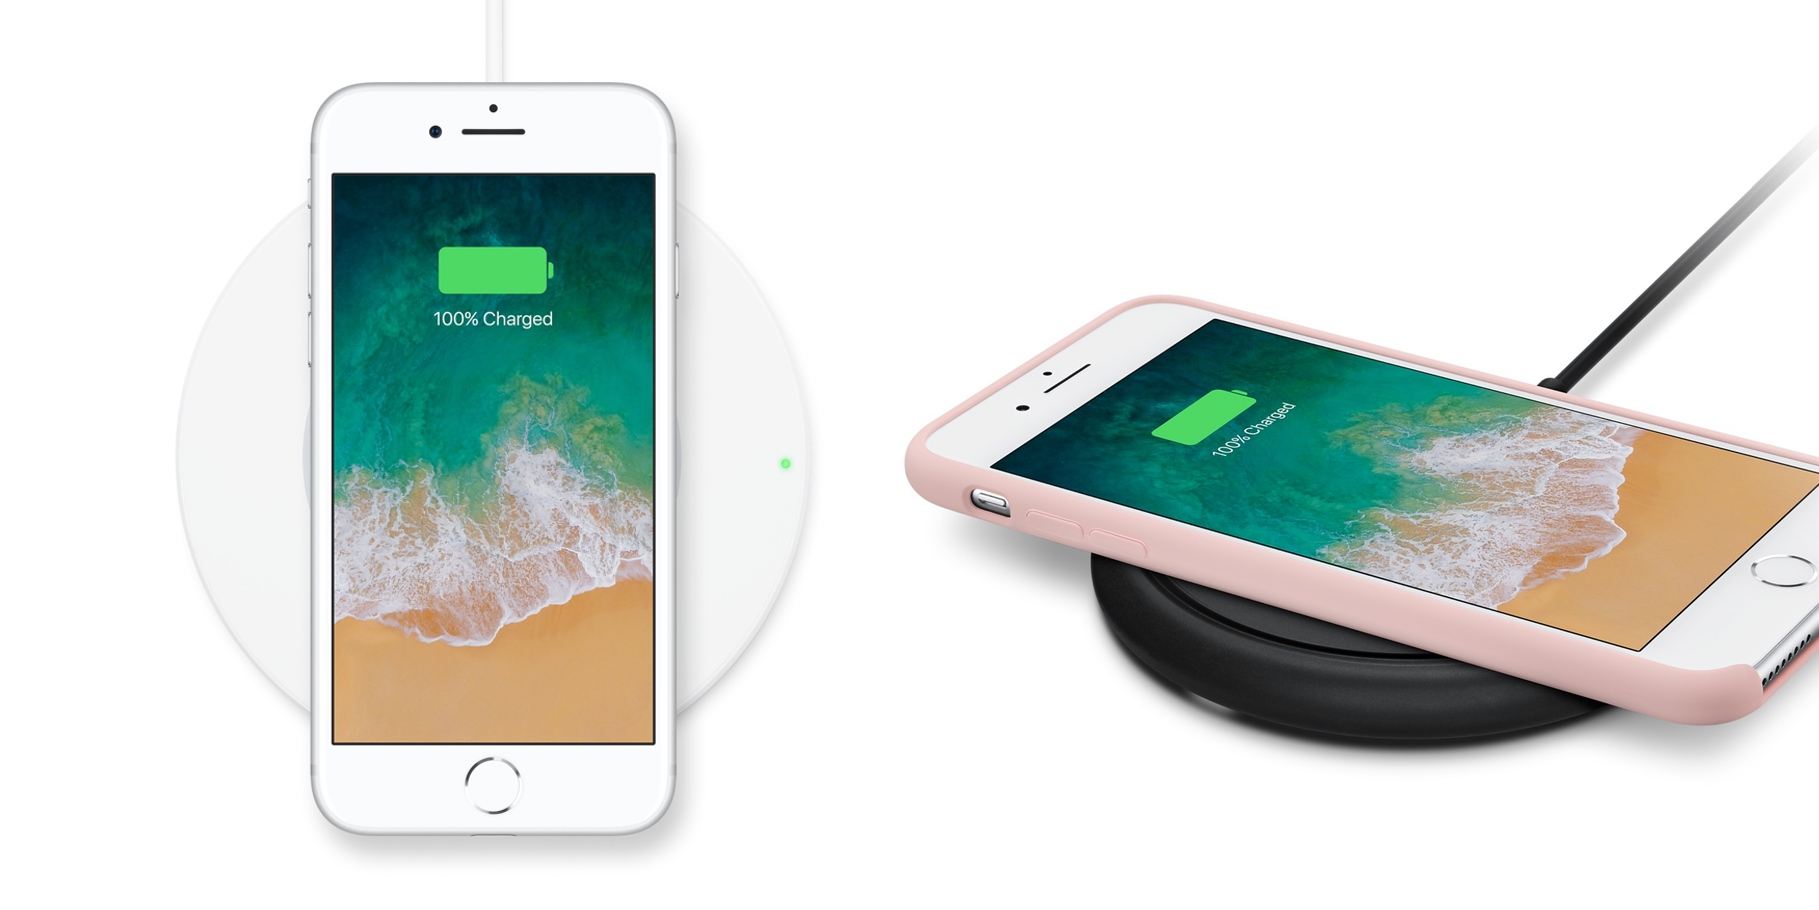 iOS 11.2 enables 7.5W wireless charging for iPhone 8 and